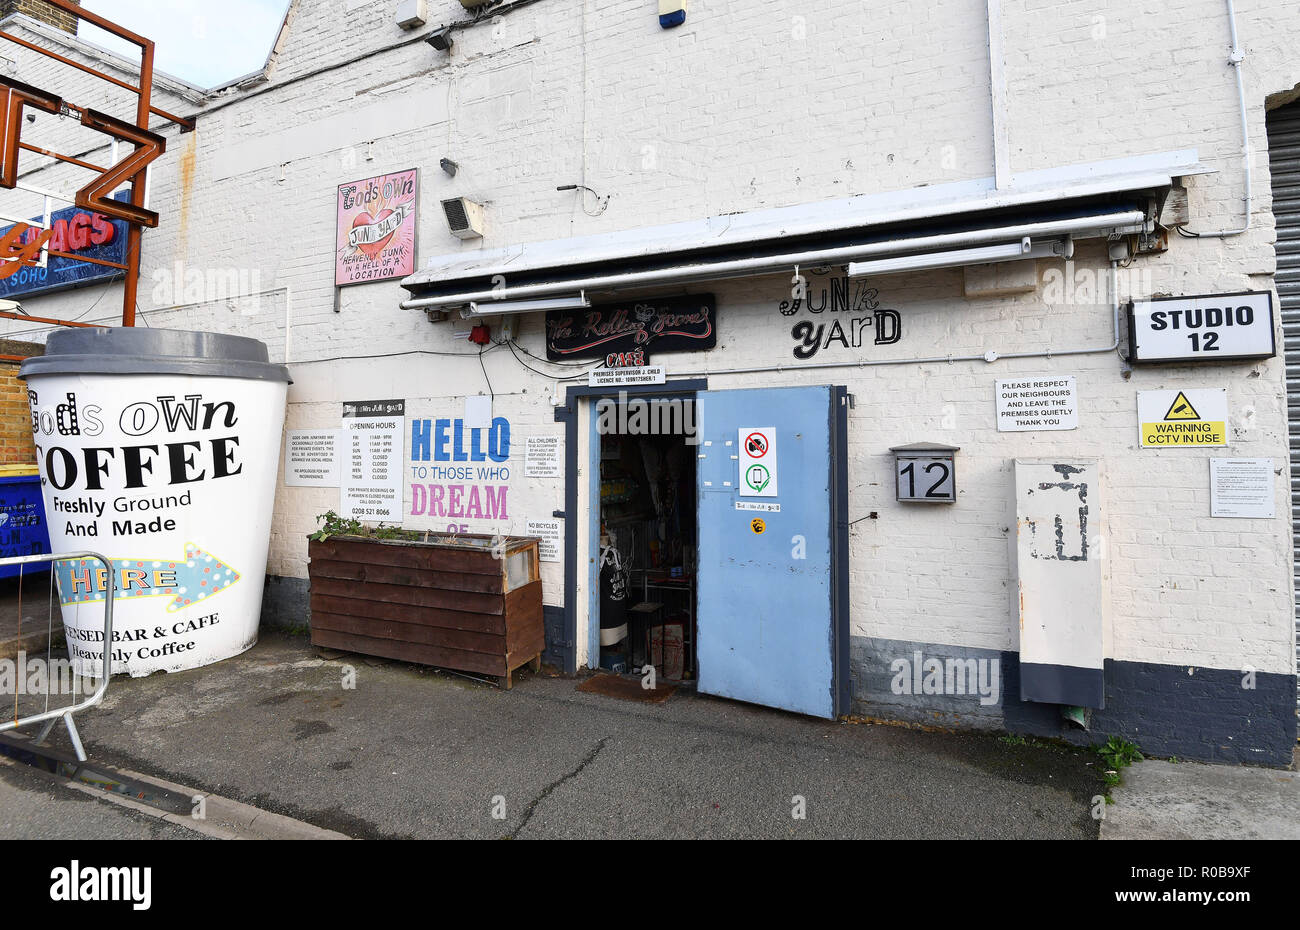 A view of the entrance to God's Own Junkyard in Walthamstow, north east London, which showcases neon signs. - Stock Image